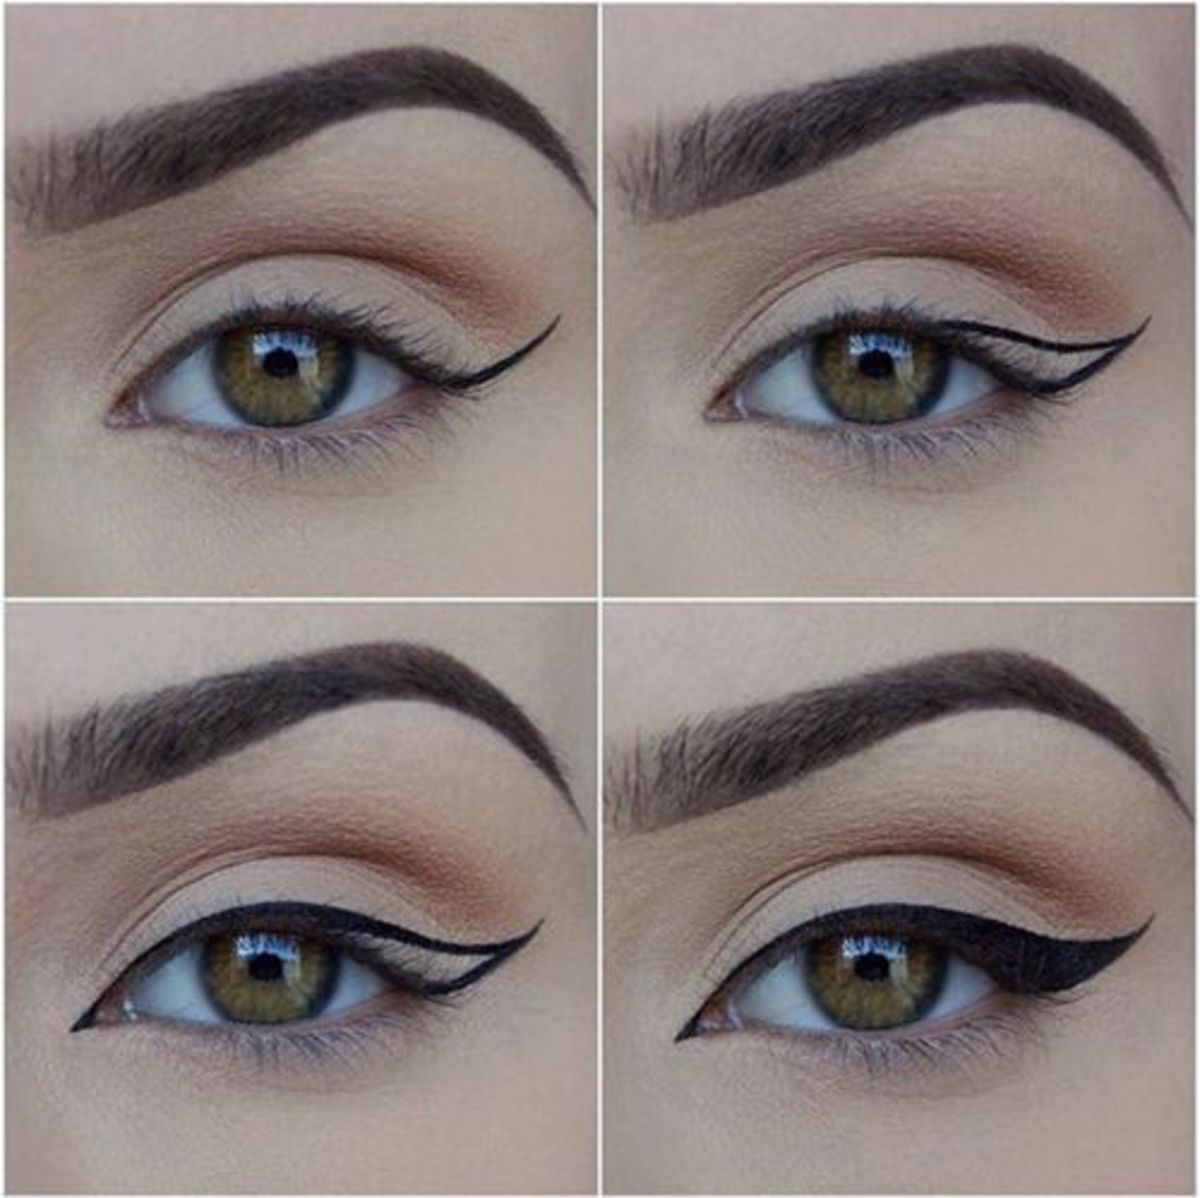 Follow your natural eye shape and draw a line that works with that.